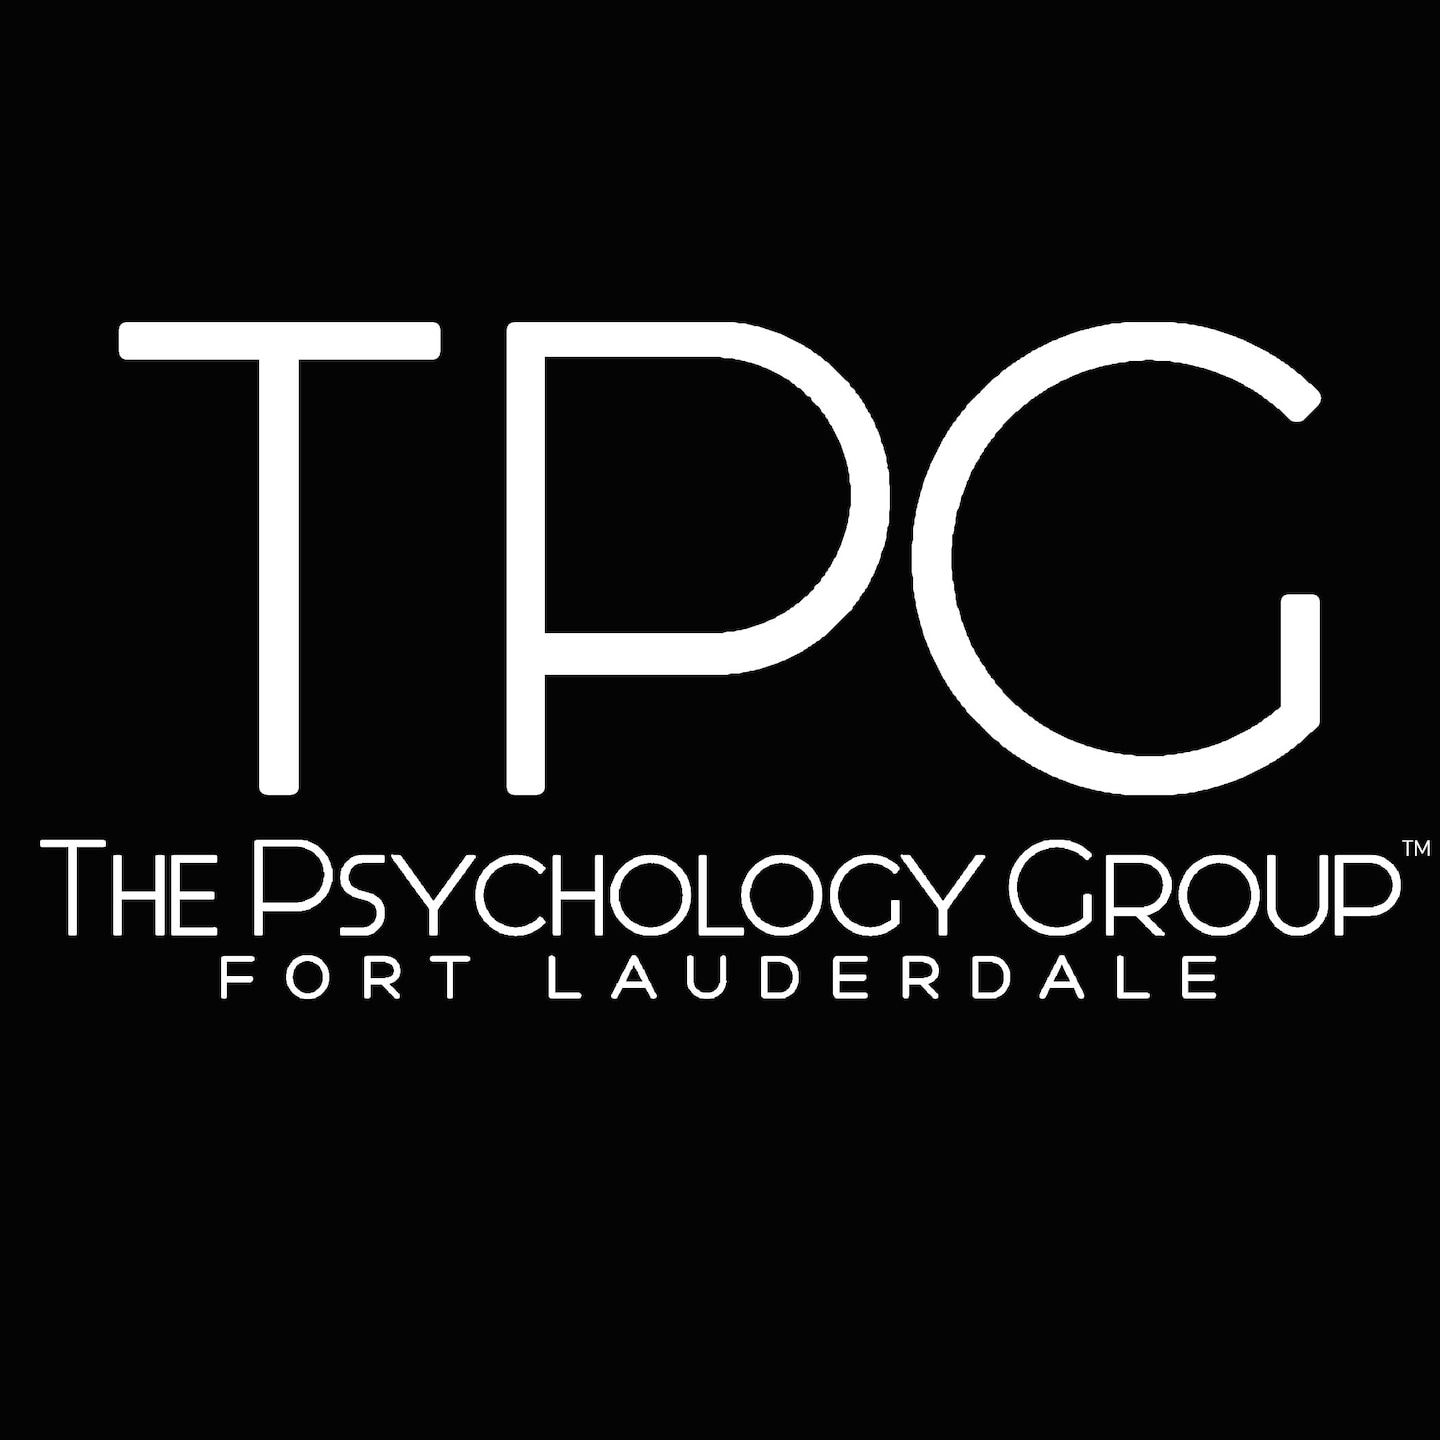 The Psychology Group Fort Lauderdale